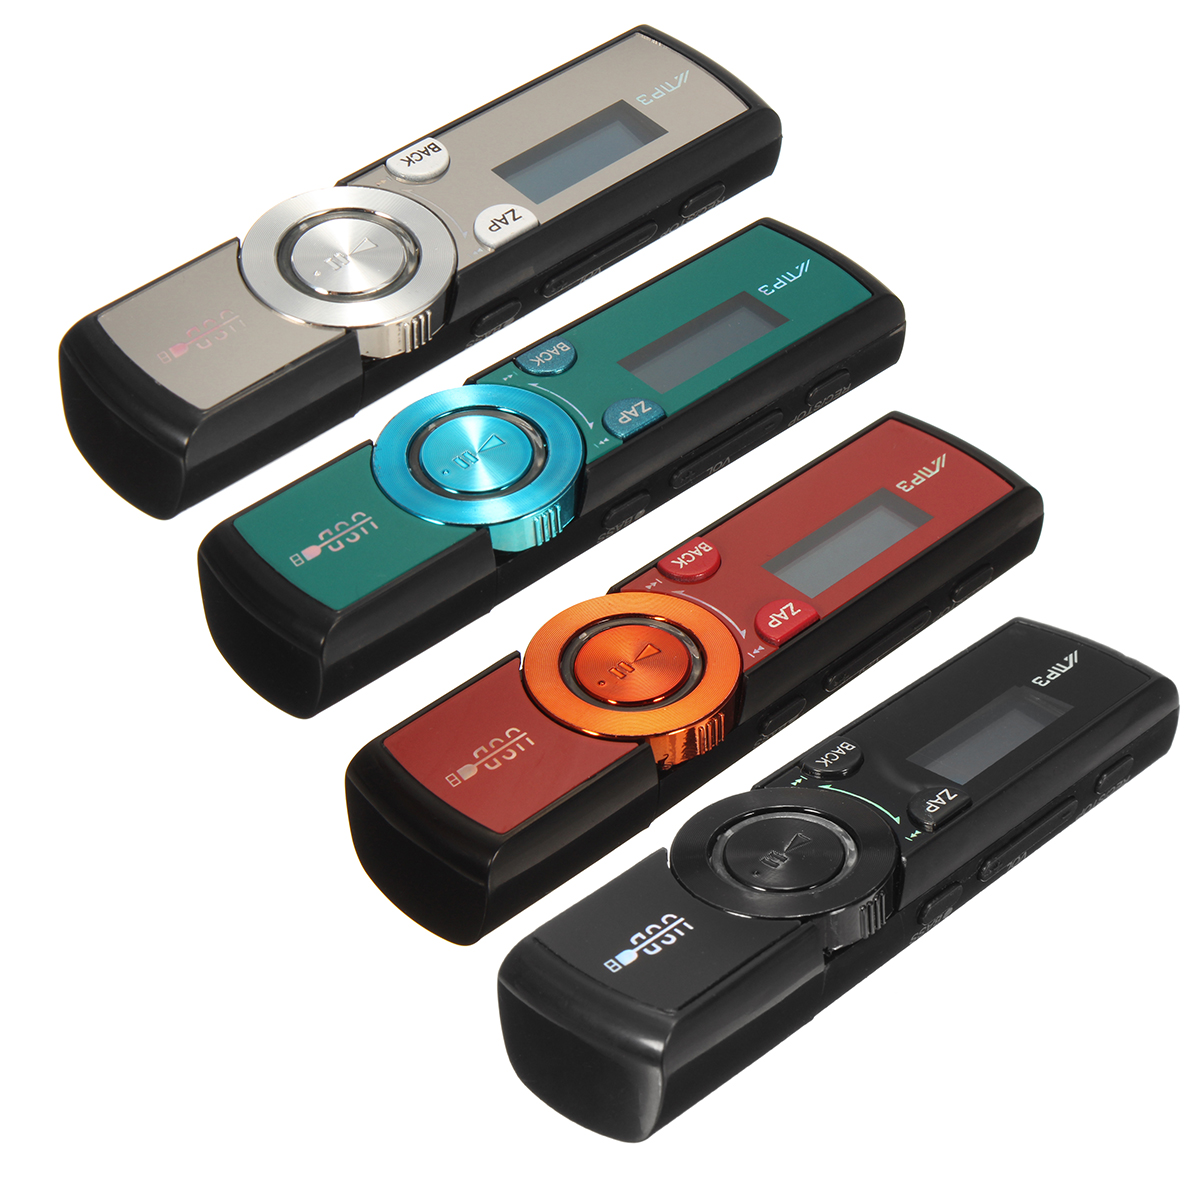 LCD HD Screen MP3 Player USB FM Radio Kit Headphones+Clip Support Memory Card (not included)